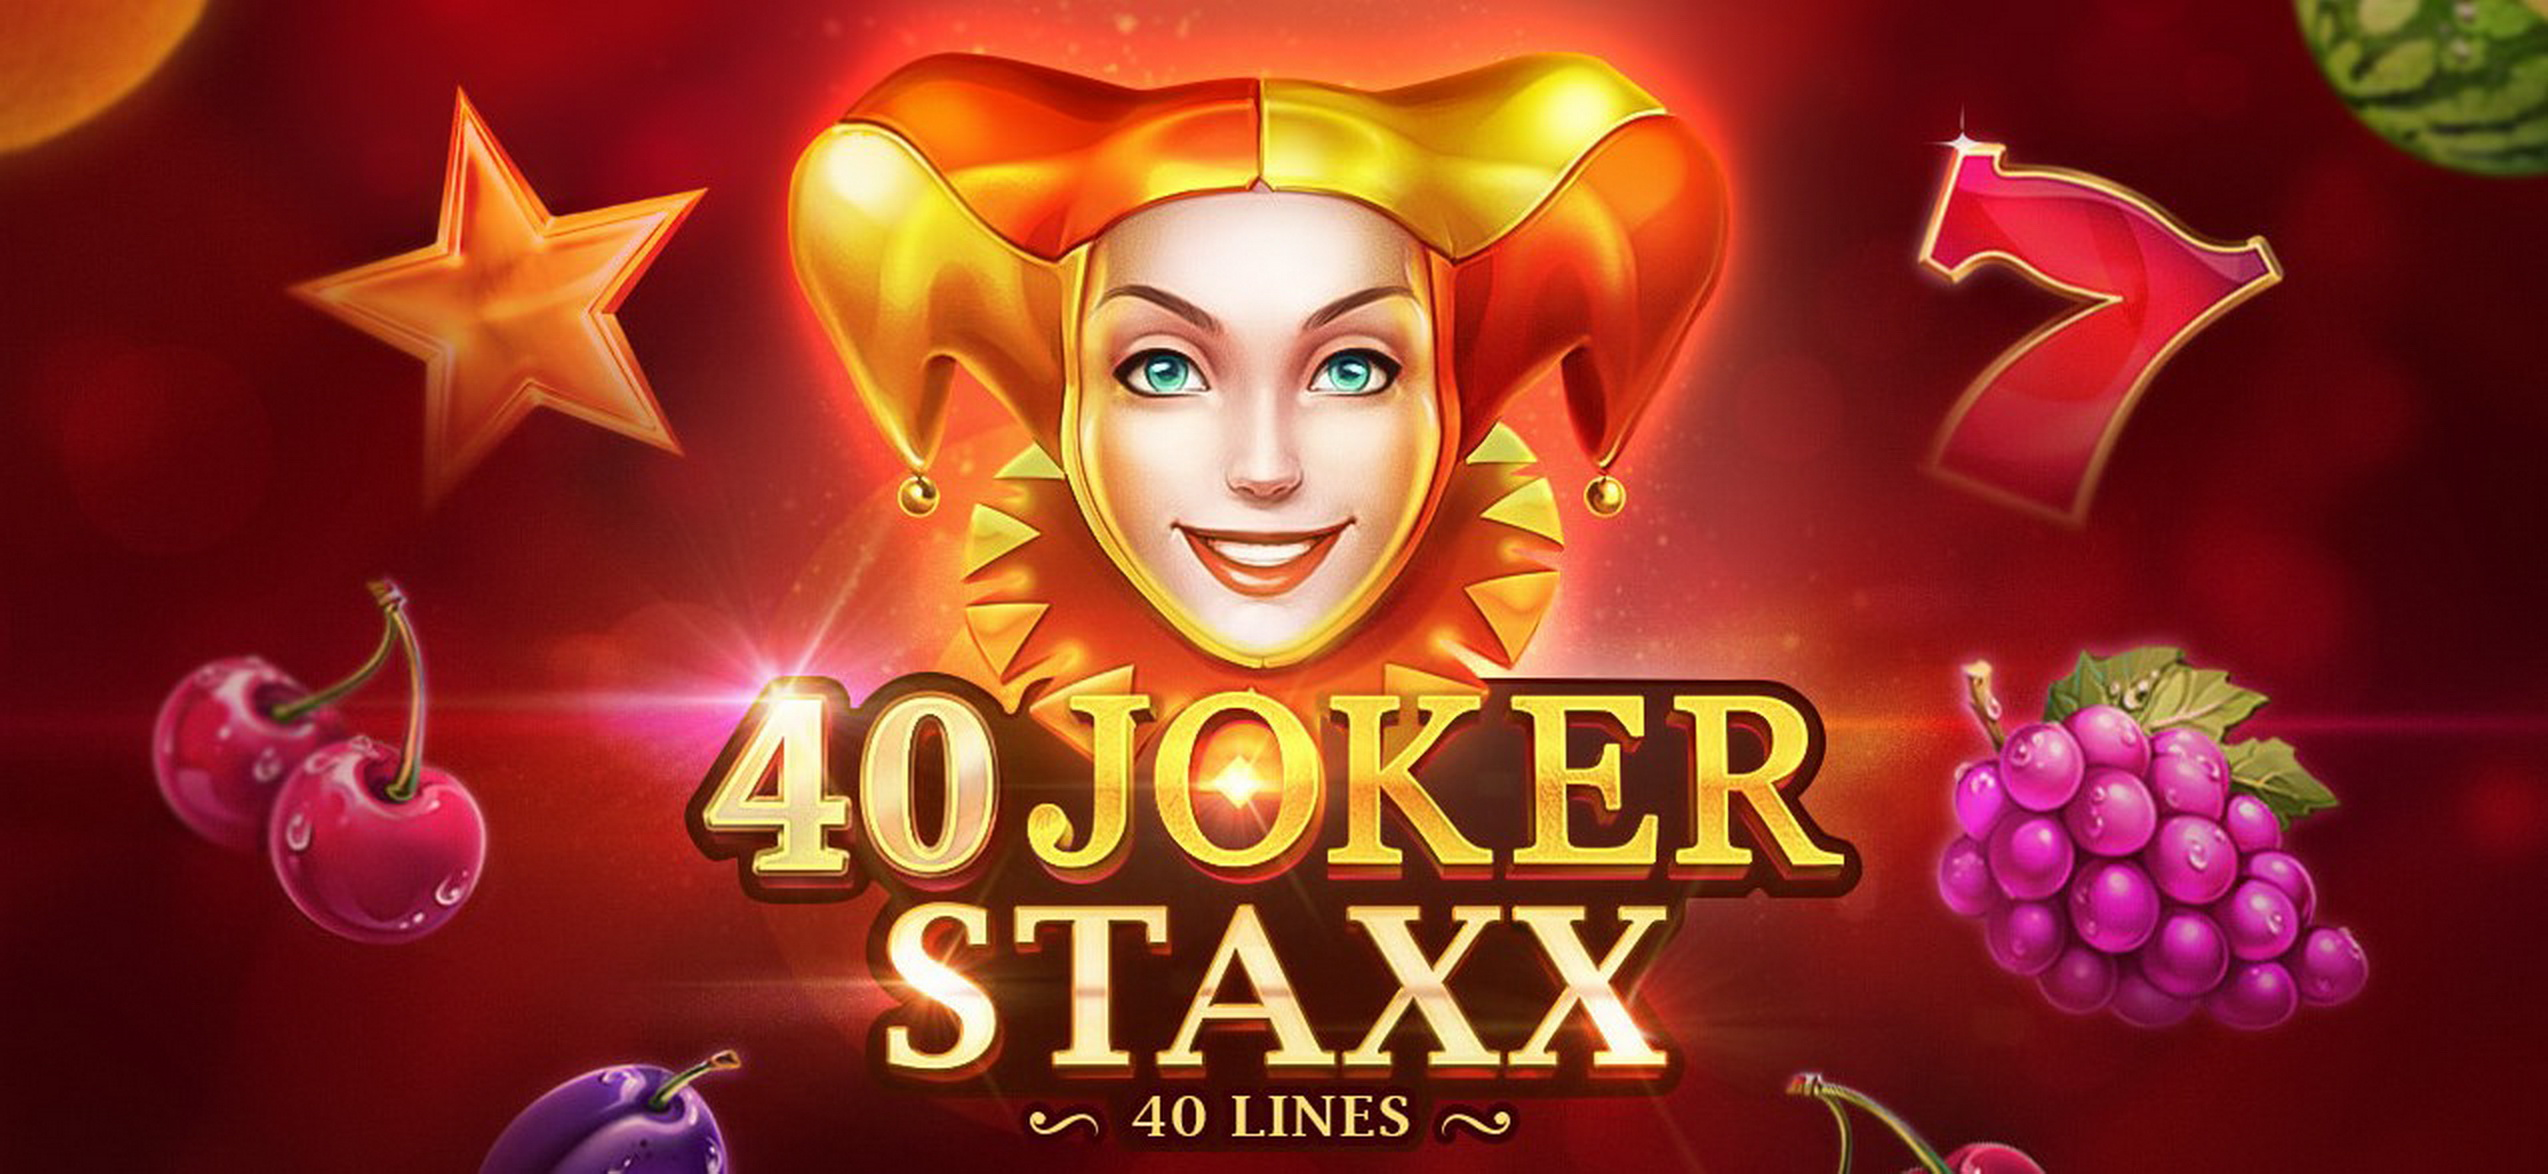 The Joker Expand: 40 lines Online Slot Demo Game by Playson